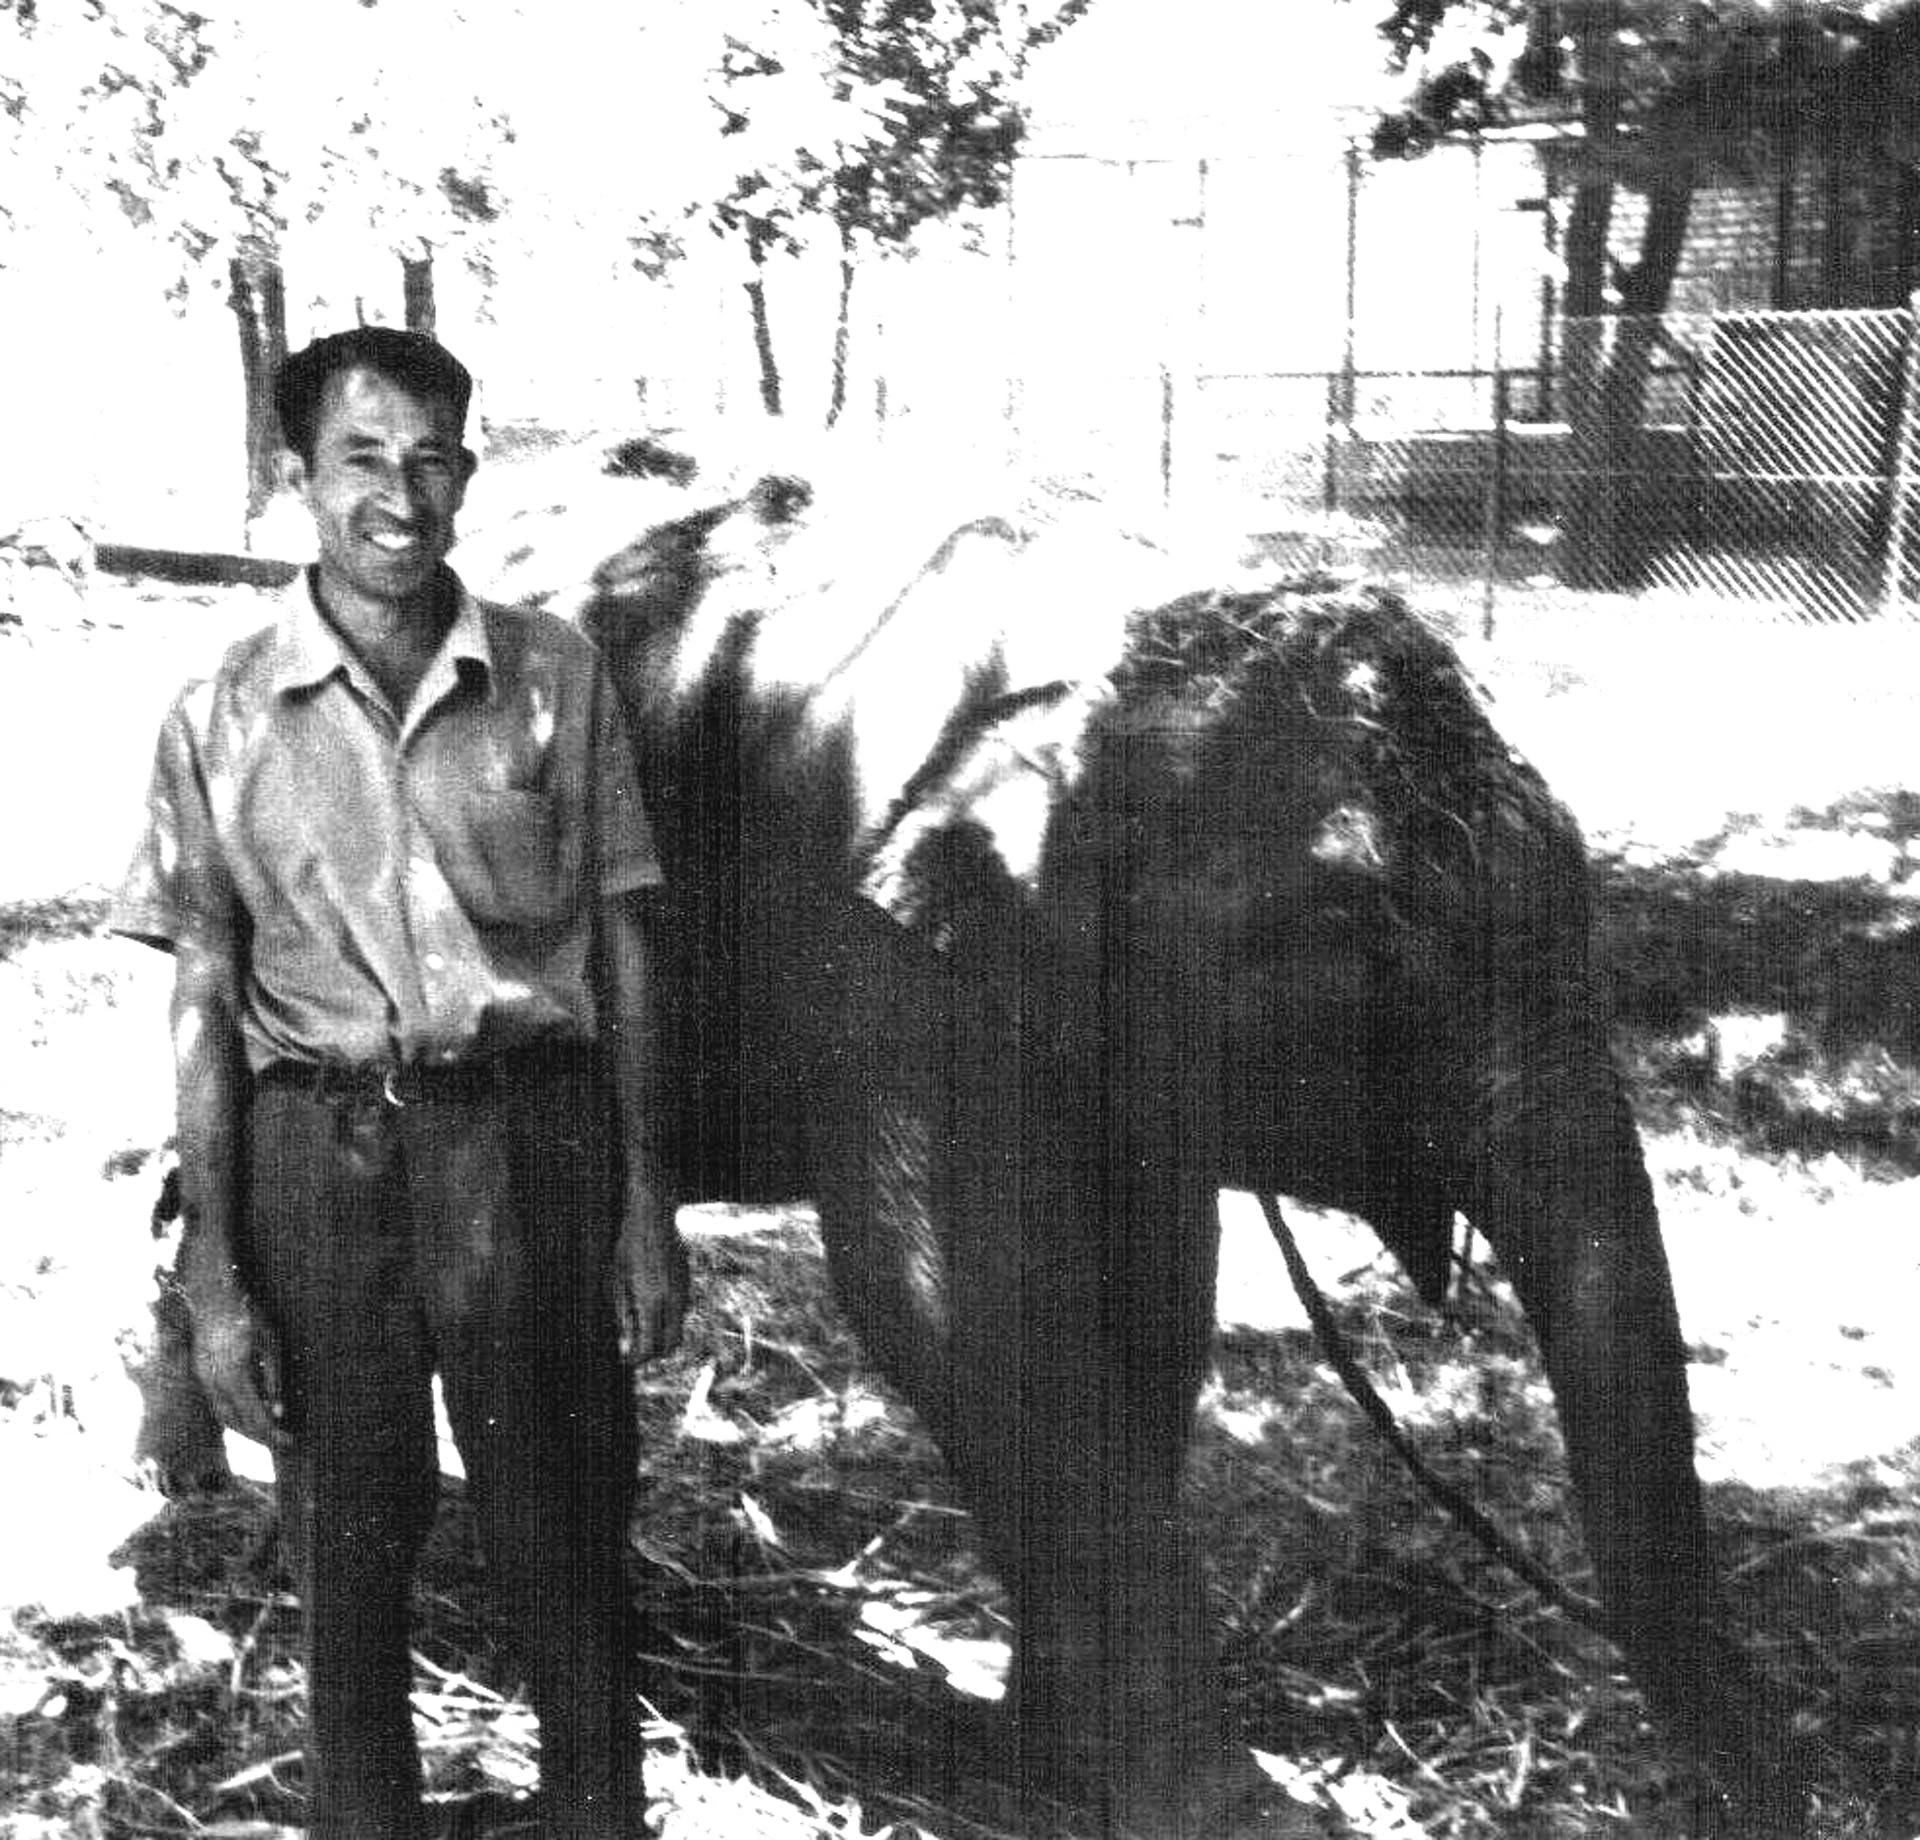 Shehr Mohammad, Gunther Nogge's friend, posing with Hathi. Courtesy: Gunther Nogge